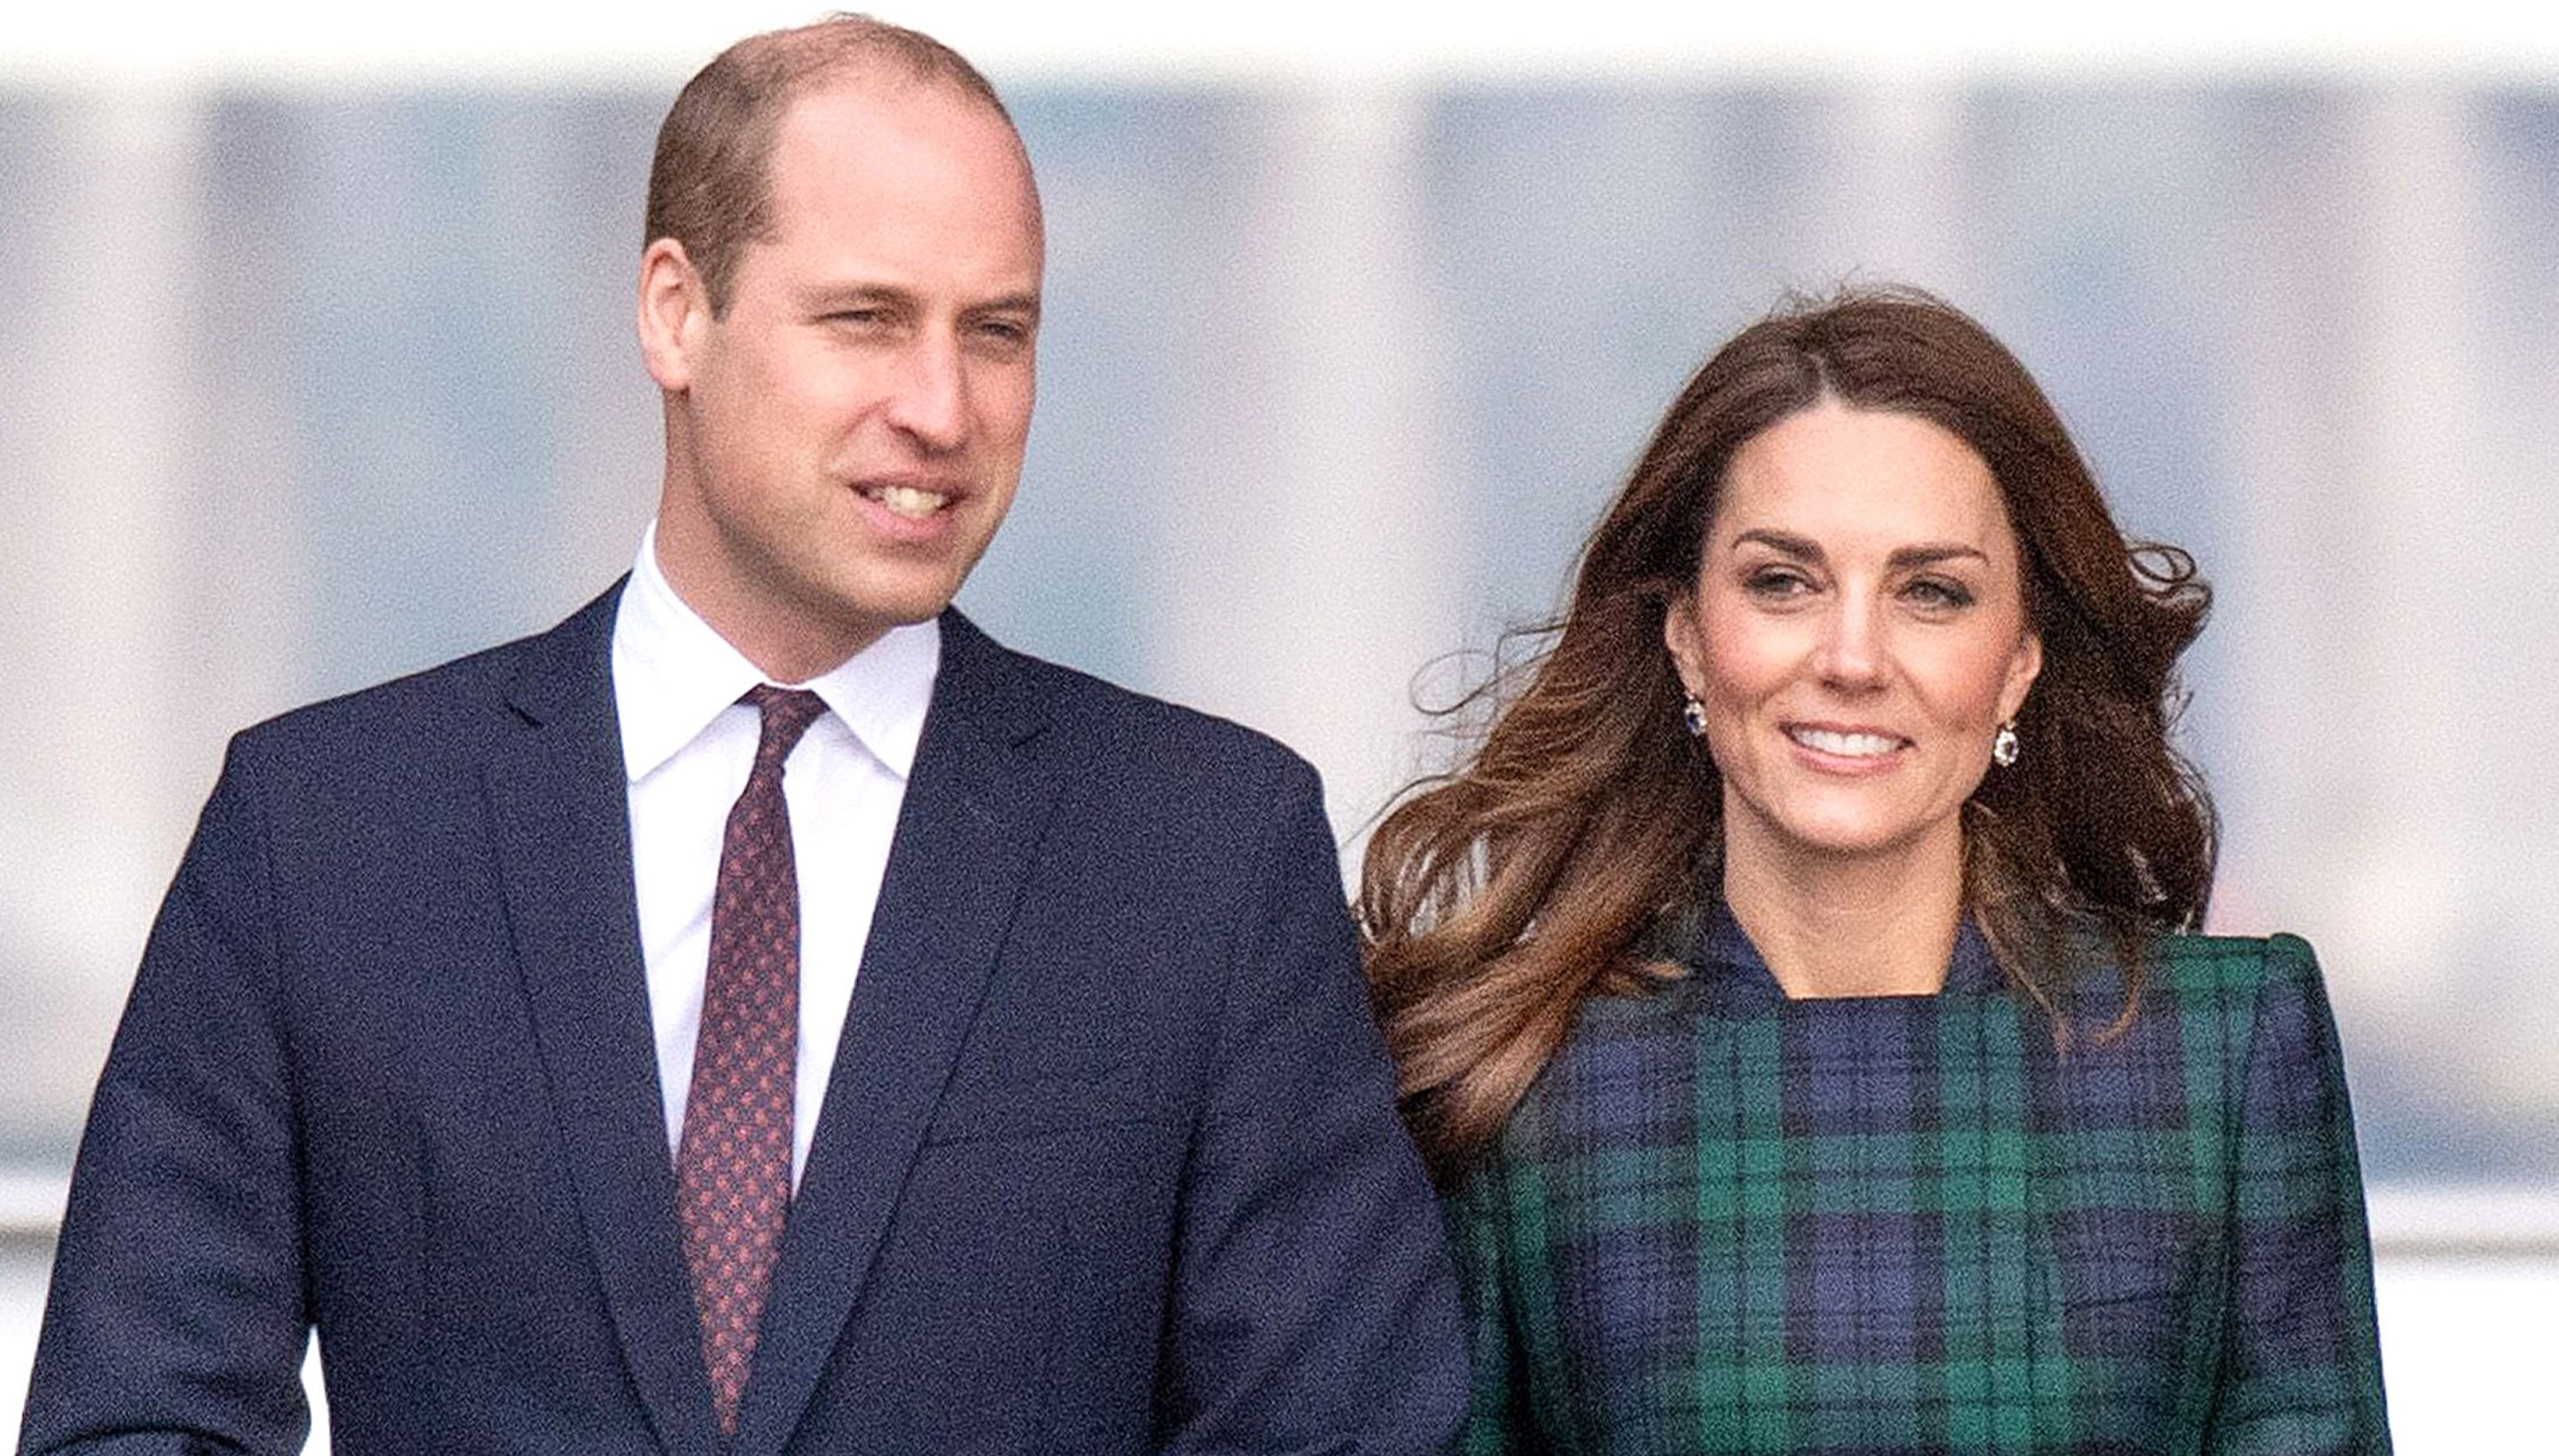 Prince Louis steals the limelight in beautiful family photos shared by William and Kate